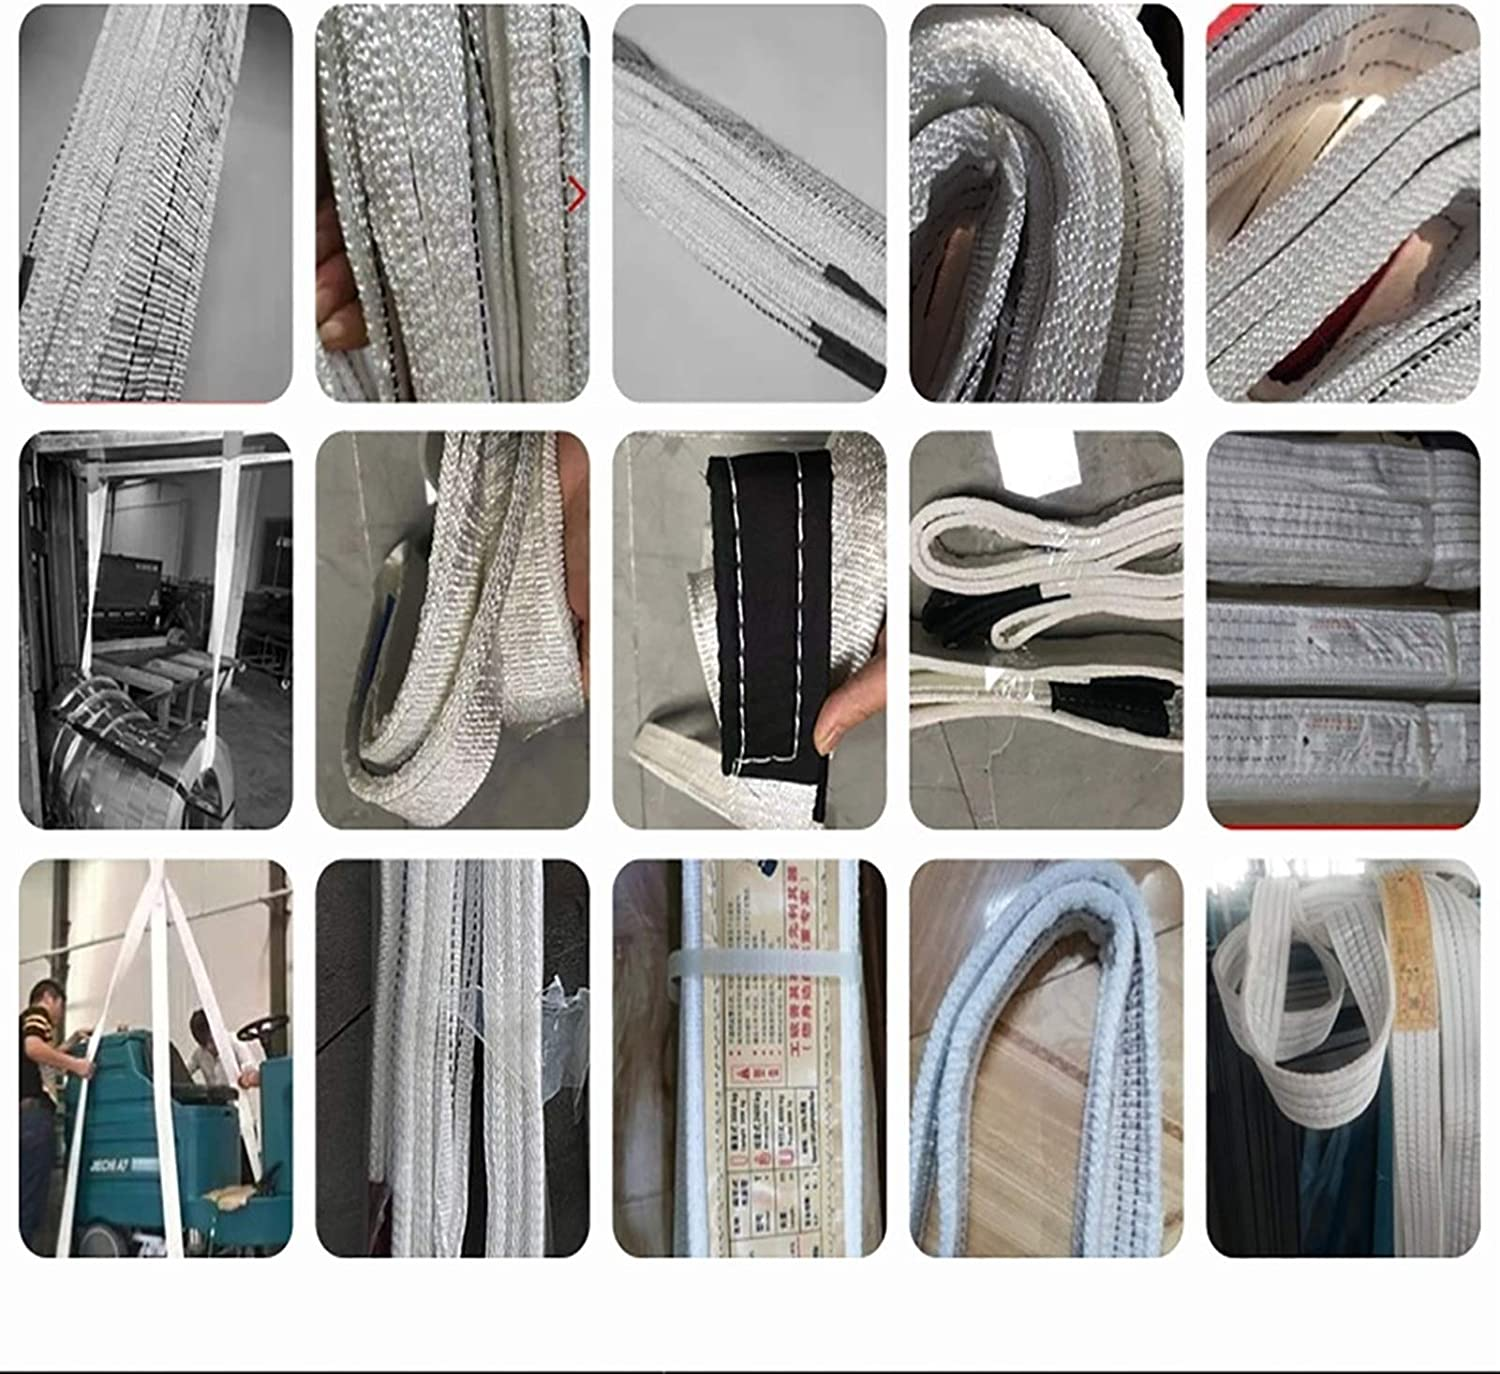 AHXF Lift Sling Straps,Lift Sling Webbing Straps Lifting Sling with Flat Loop Strong Heavy Duty Duplex Polyester Webbing Cargo Lift Sling Strap Strop Max Breaking Strength 2200lbs White